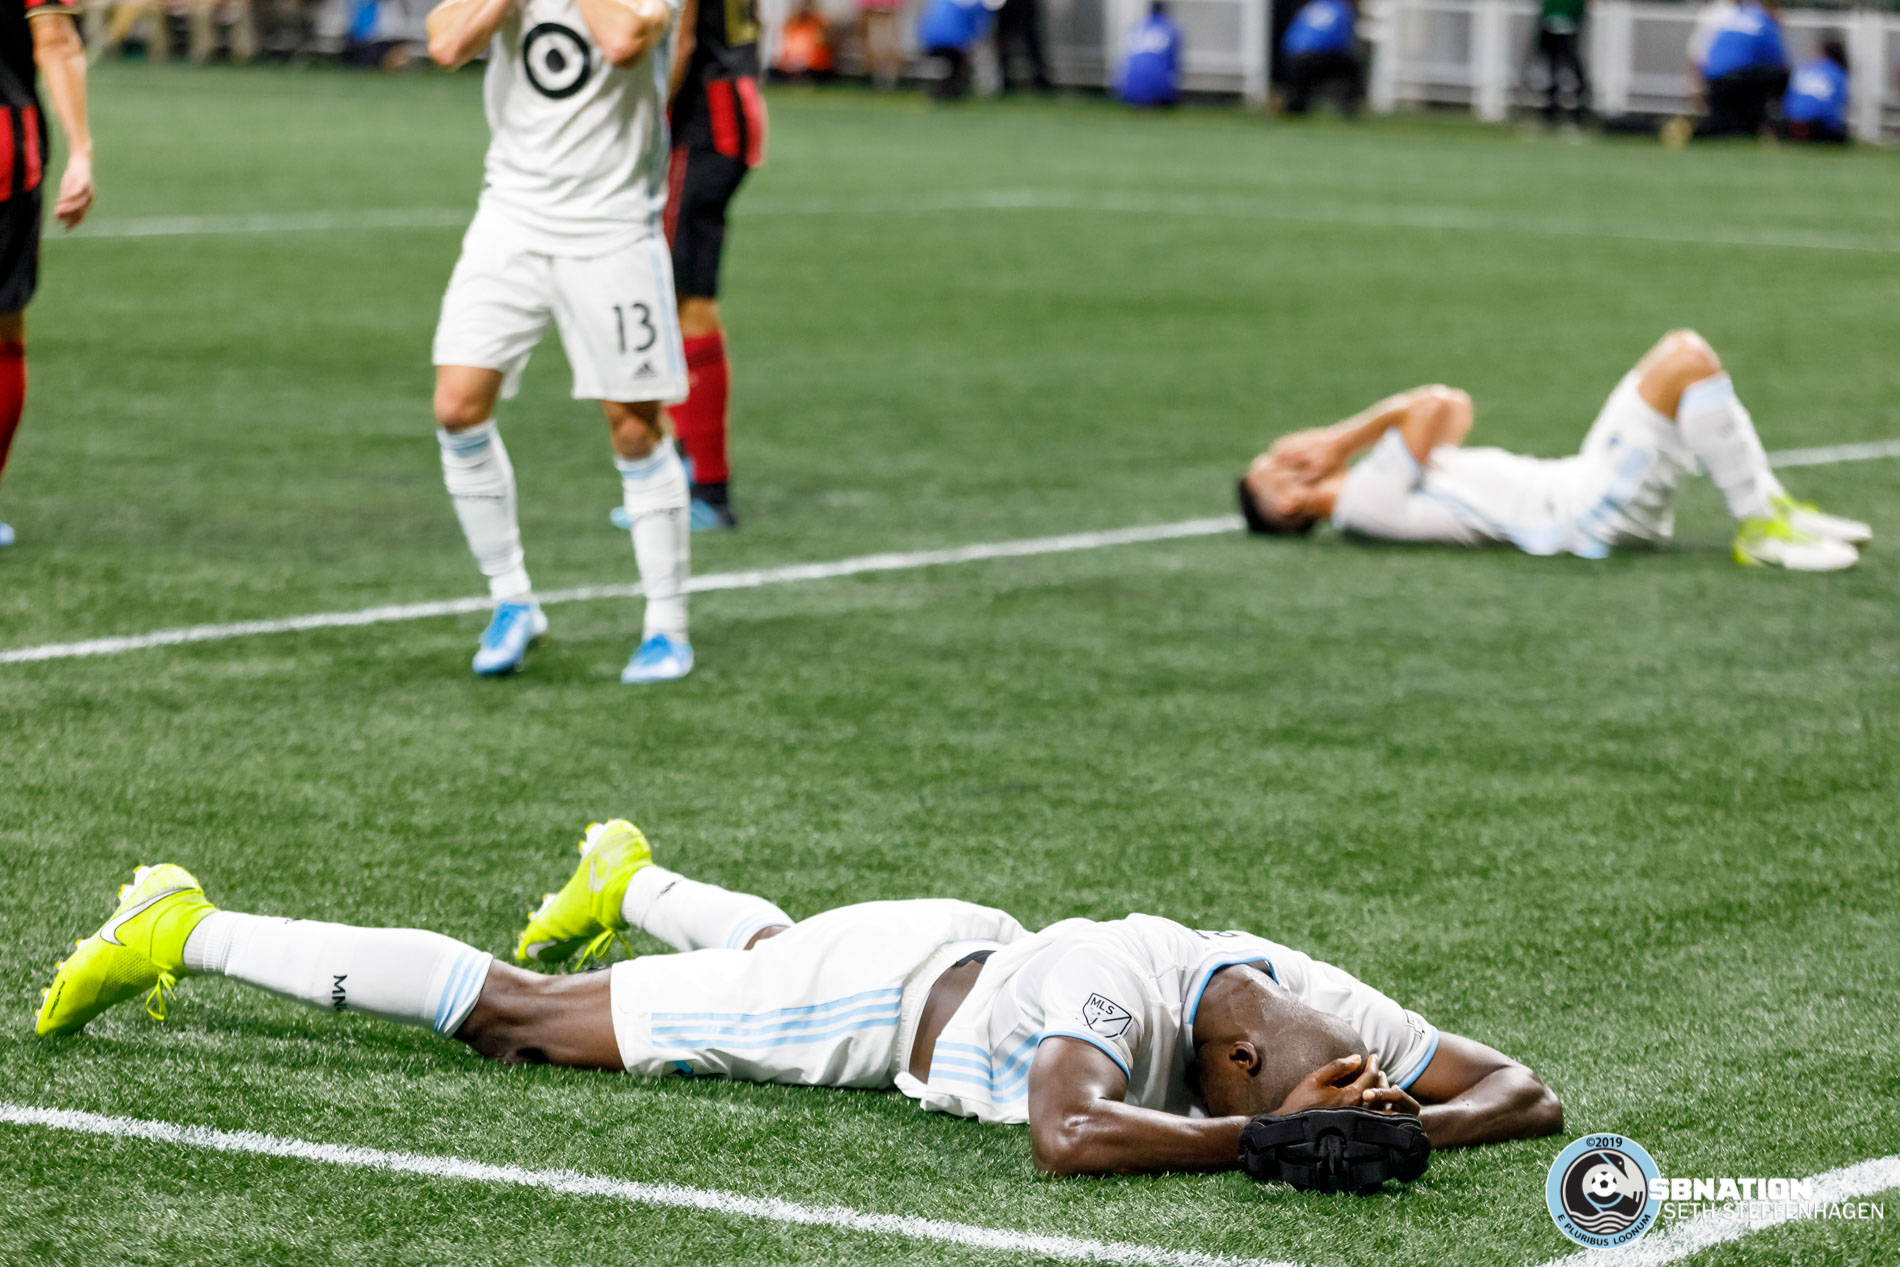 August 27, 2019 - Atlanta, Georgia, United States - Minnesota United defender Ike Opara (3) and fellow defender Michael Boxall (15) lay on the turf in disappointment after a missed goal scoring opportunity during the US Open Cup Final match between Atlanta United and Minnesota United at Mercedes-Benz Stadium.